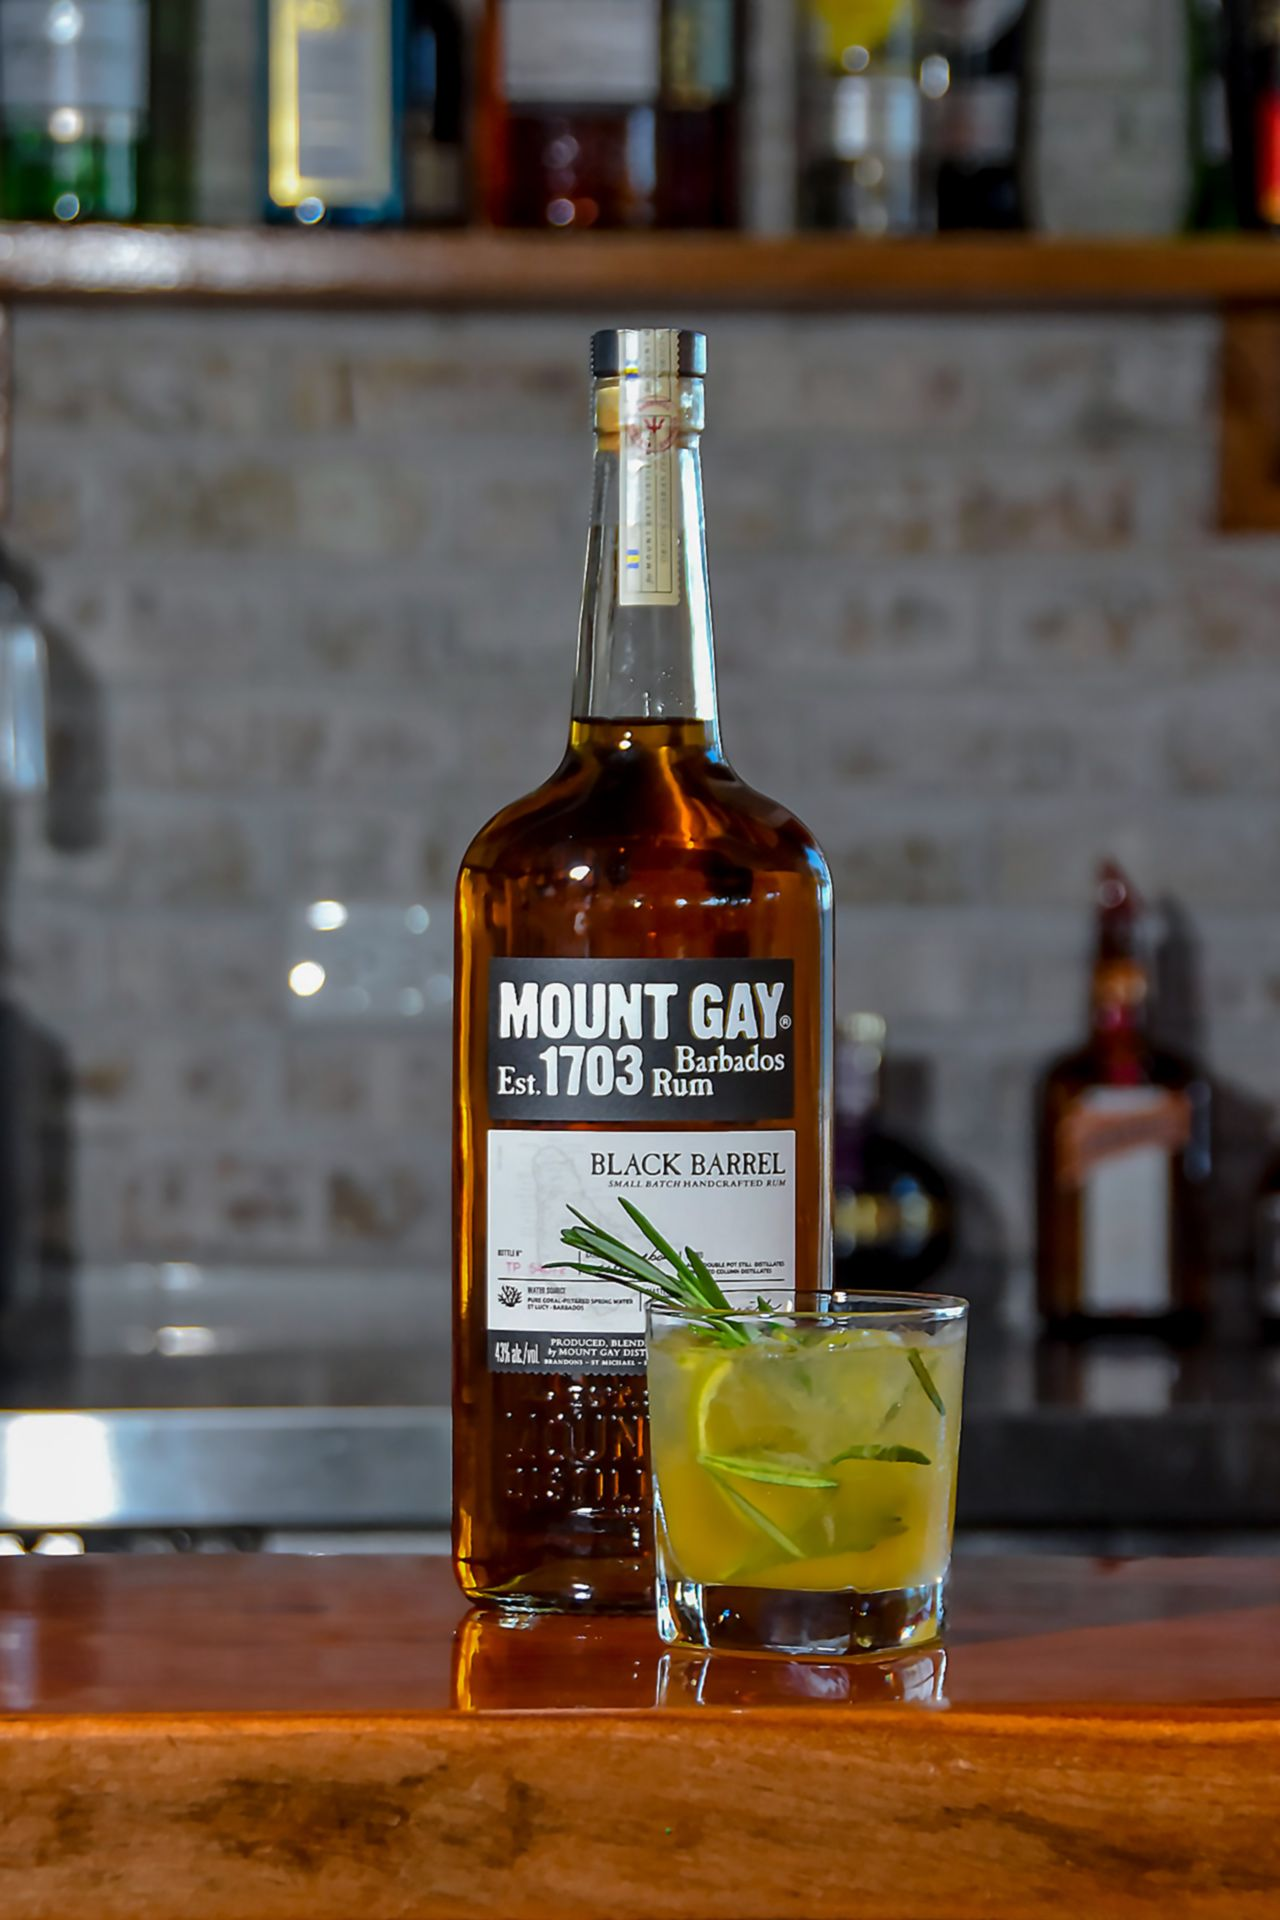 Mount Gay rosemary rum sour at Sandals Royal Barbados